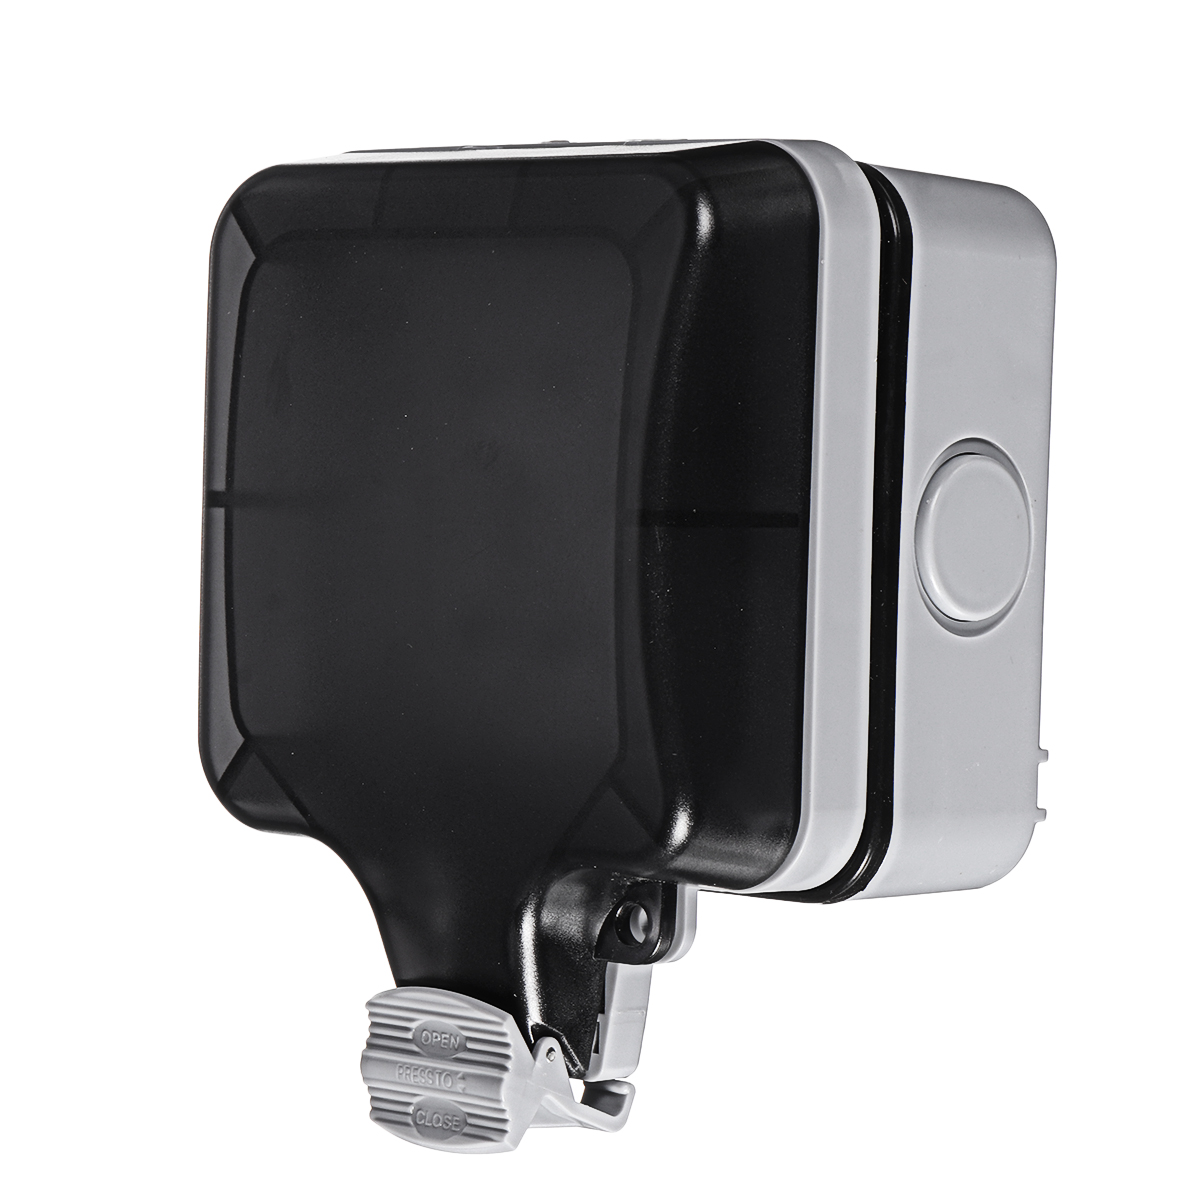 New Ip66 Weatherproof Outdoor Box Wall Socket 13a Double Universal    Uk Switched Outlet With Usb